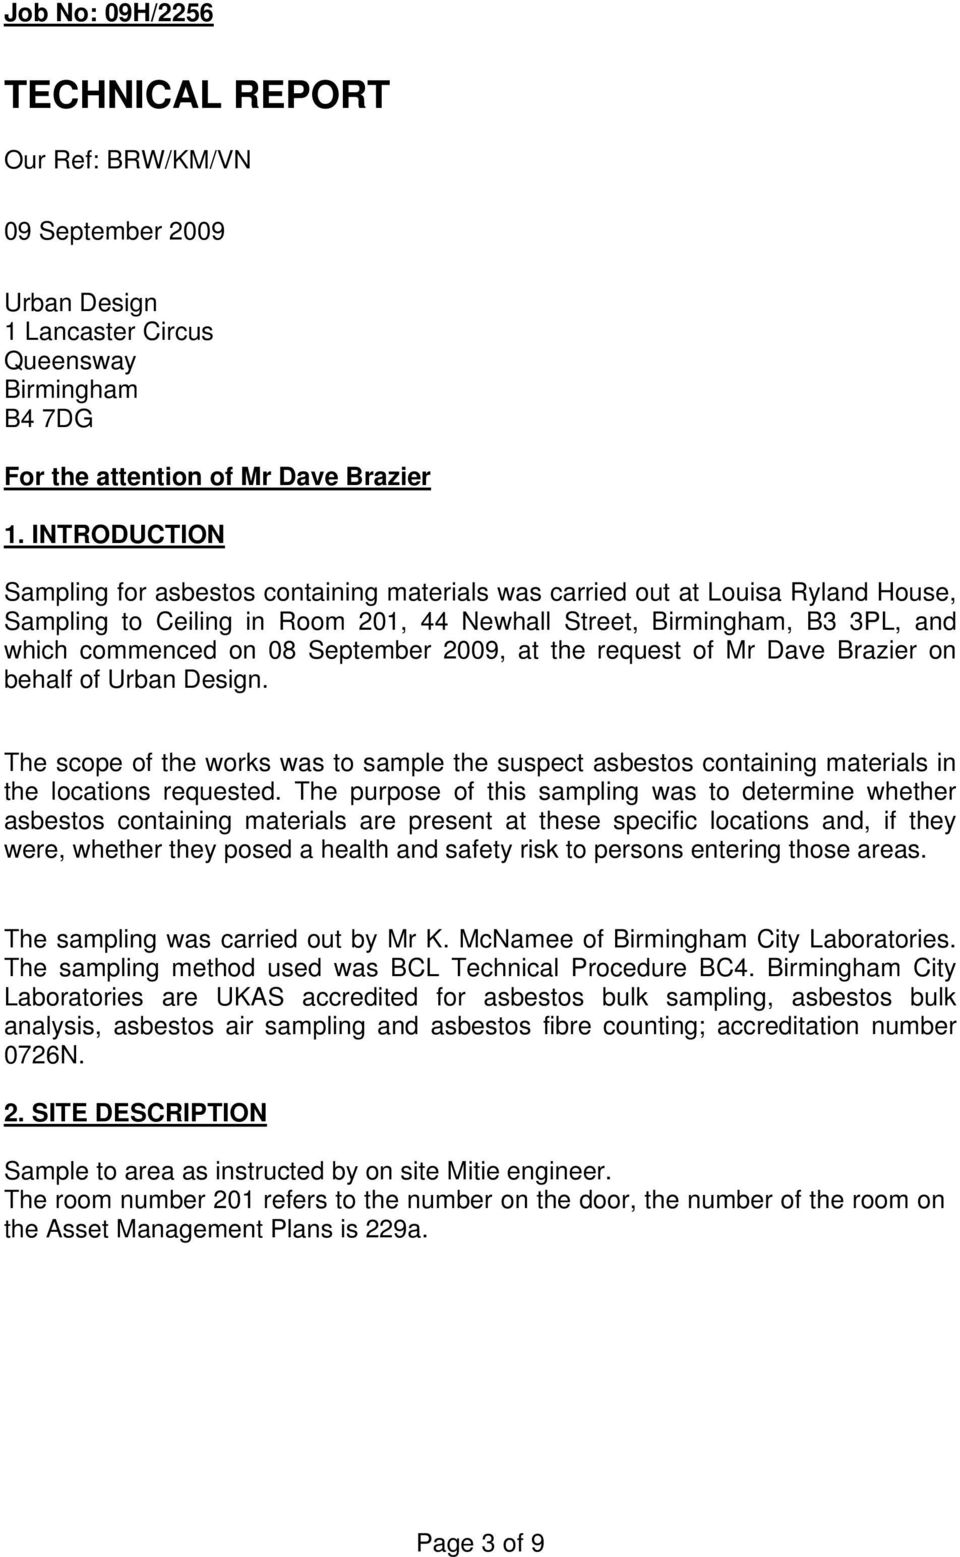 September 009, at the request of Mr Dave Brazier on behalf of Urban Design. The scope of the works was to sample the suspect asbestos containing materials in the locations requested.